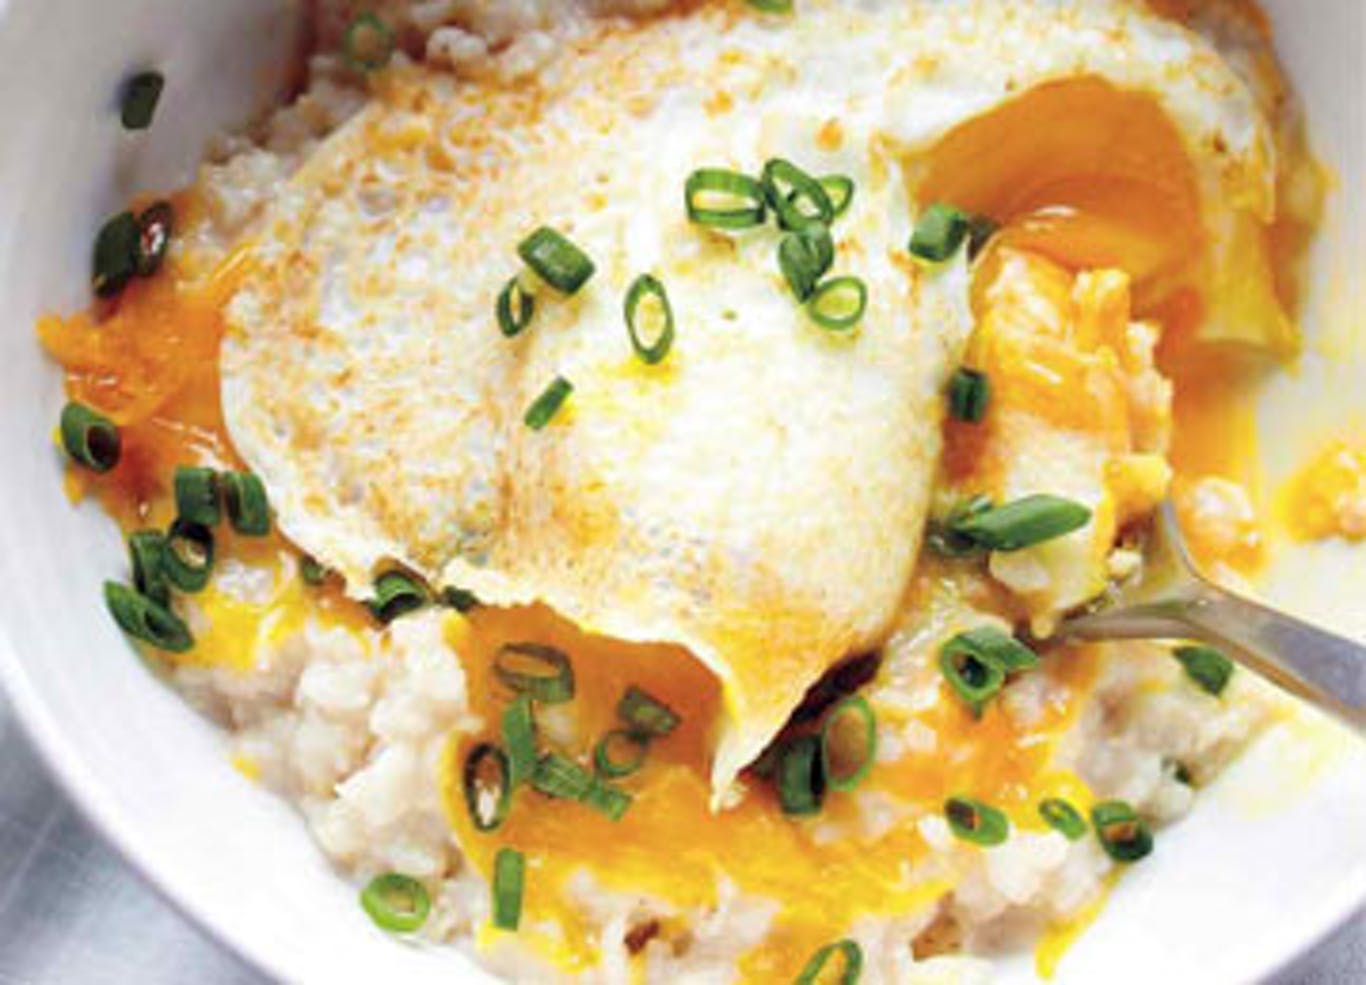 SAVORY OATMEAL AND SOFT COOKED EGG BOWL